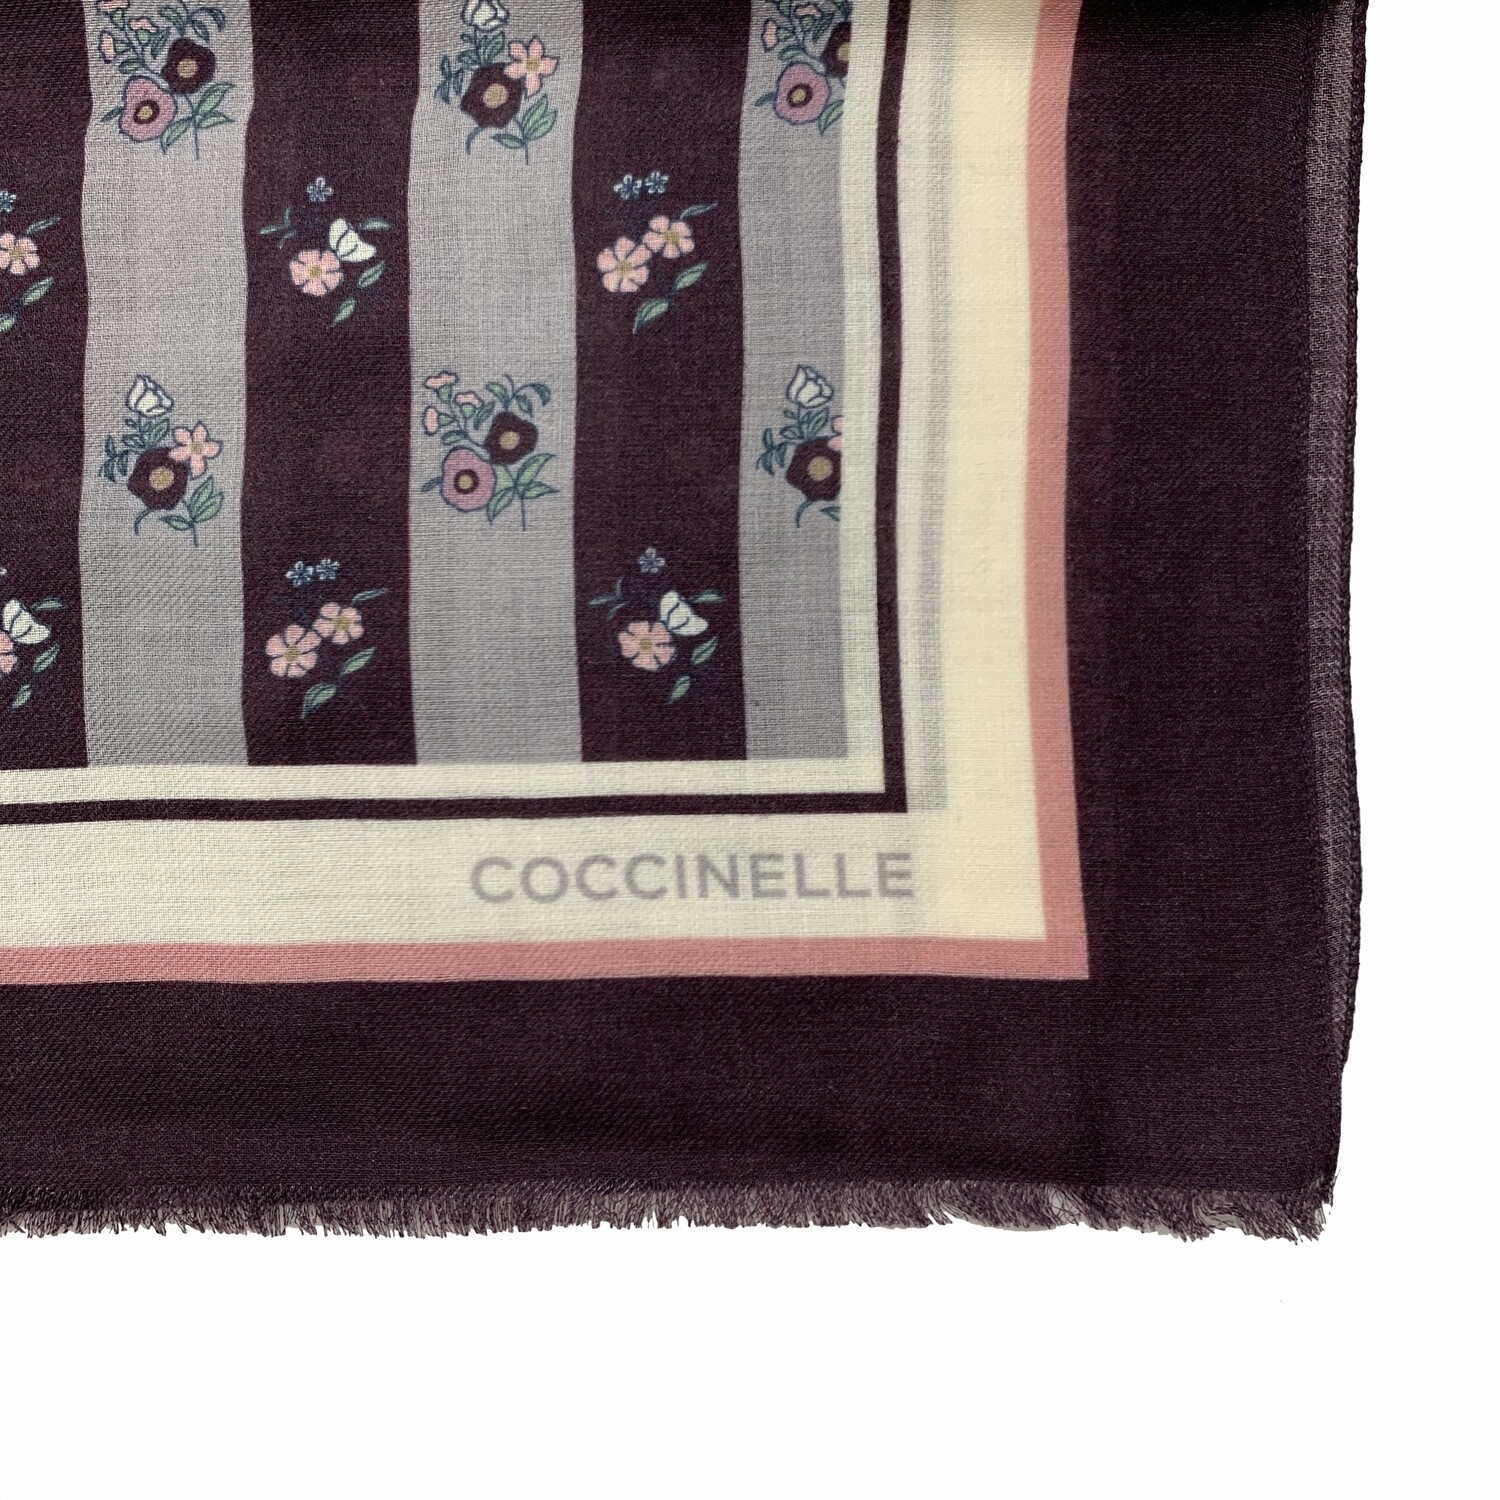 COCCINELLE - Wallpaper Print Stola - Multi Plum